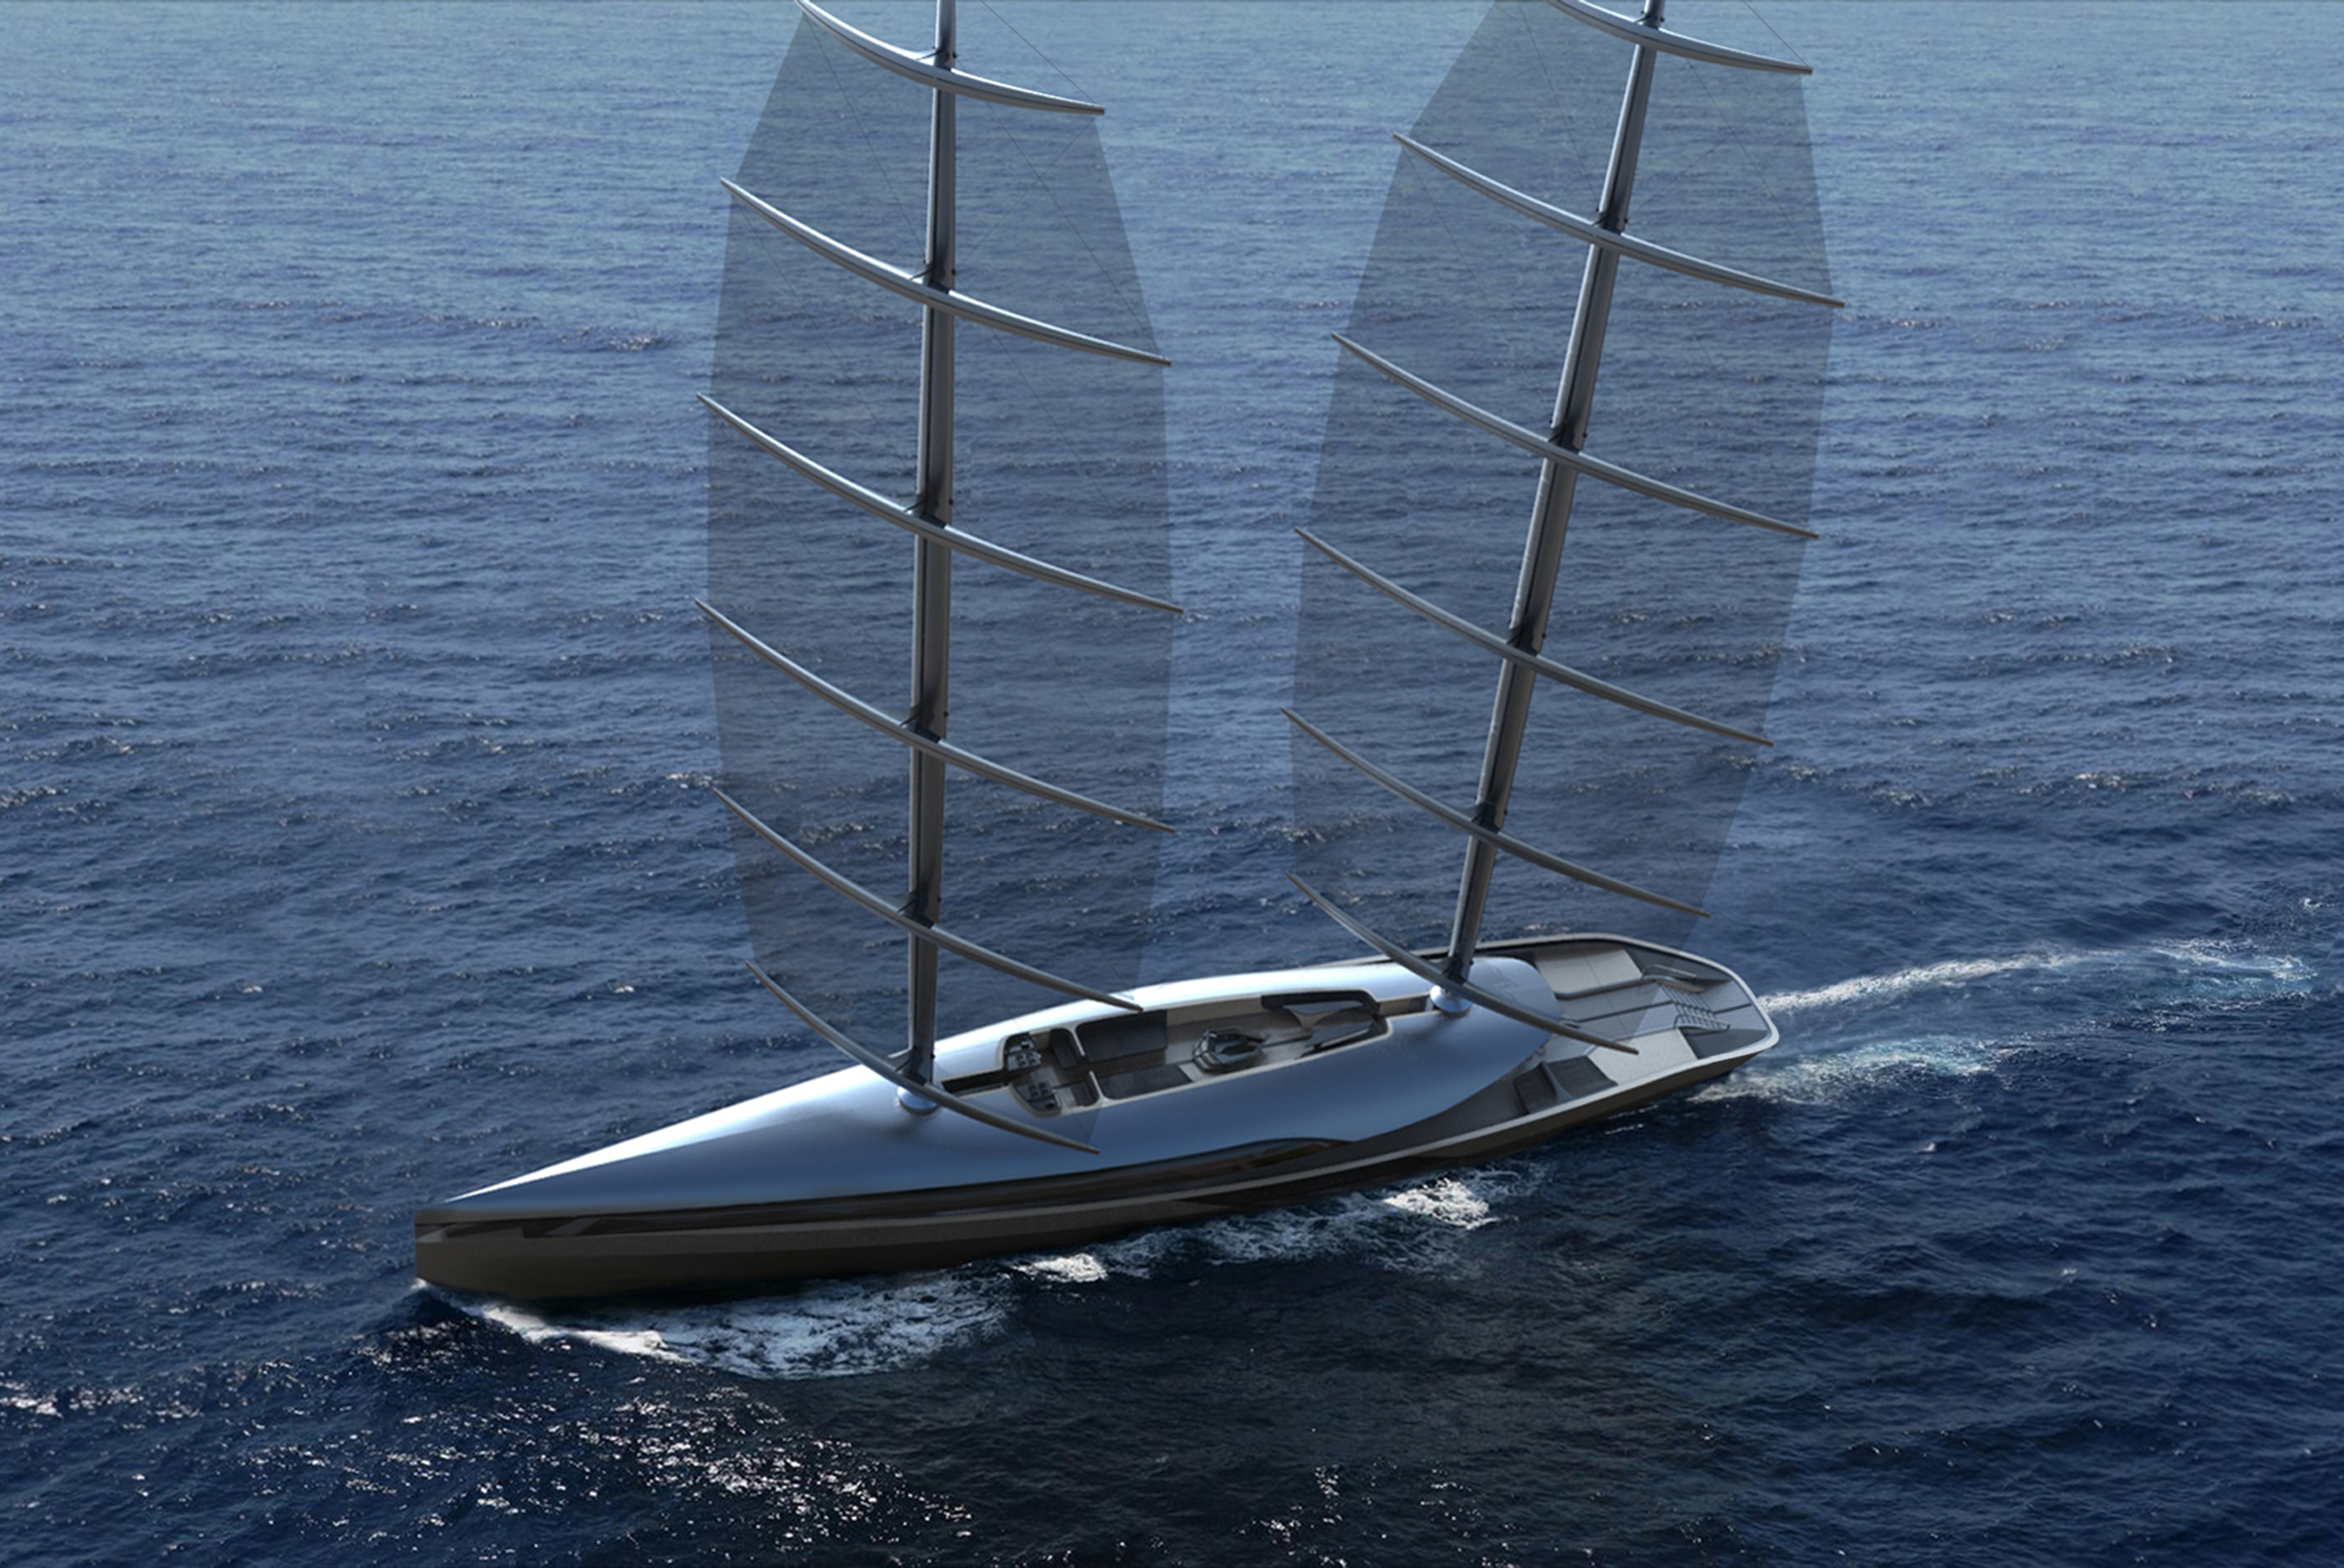 Pictures The Minimalist Cauta Sailing Yacht YBW